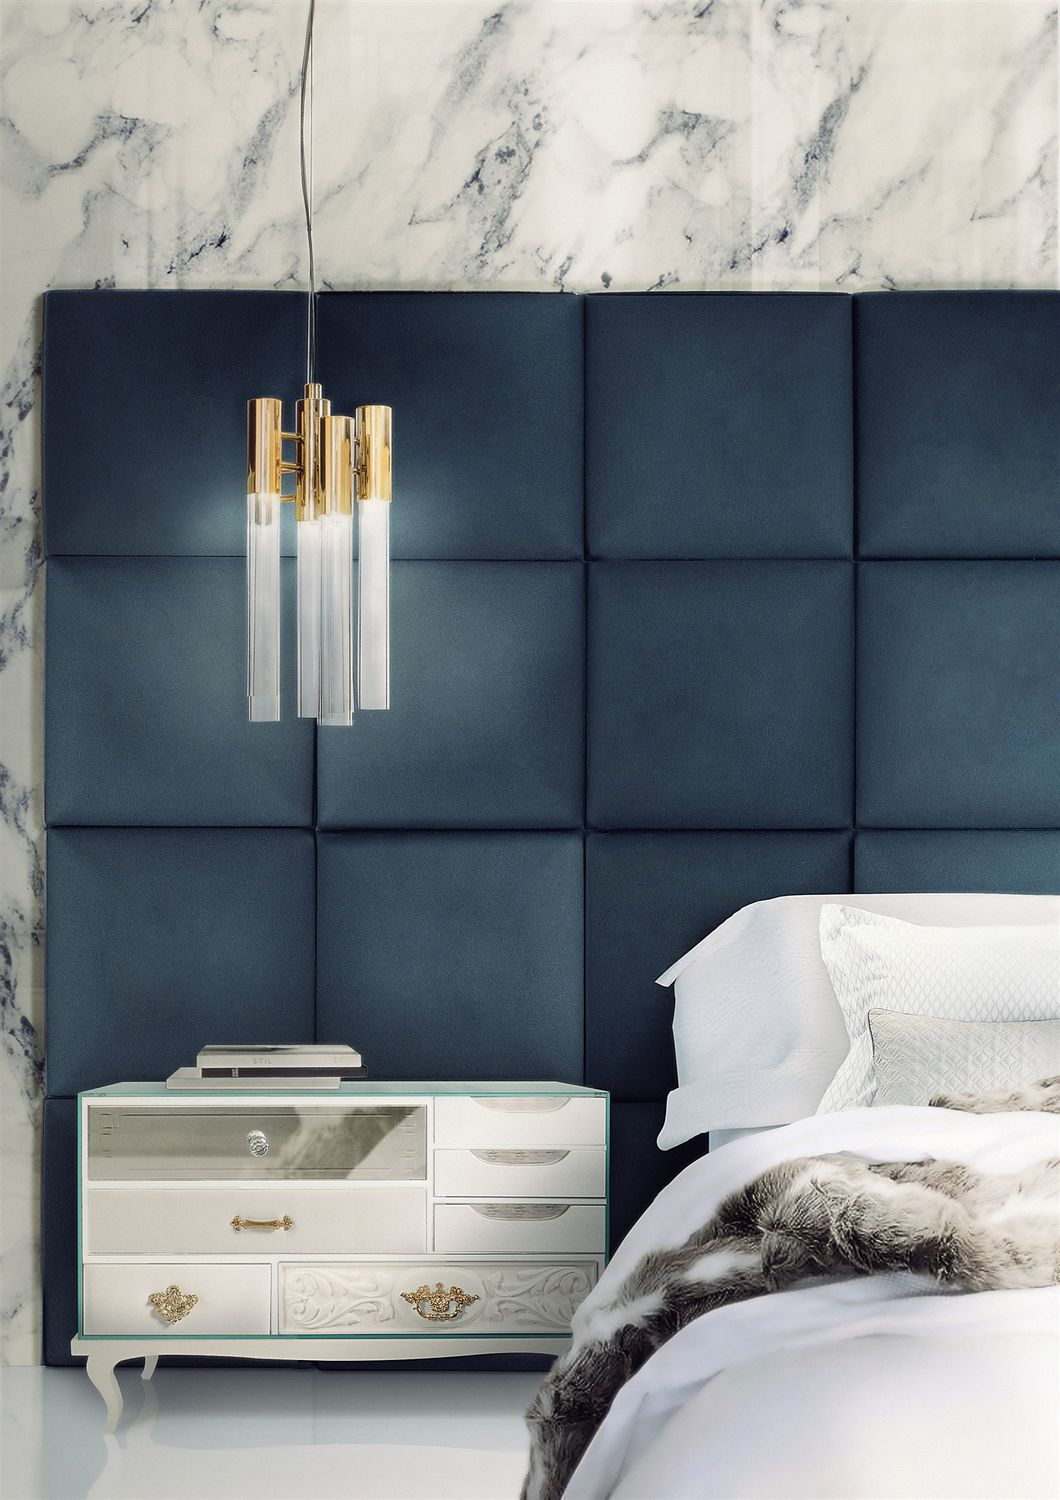 TOP 5 Bedroom Lighting Fixtures From LUXXU